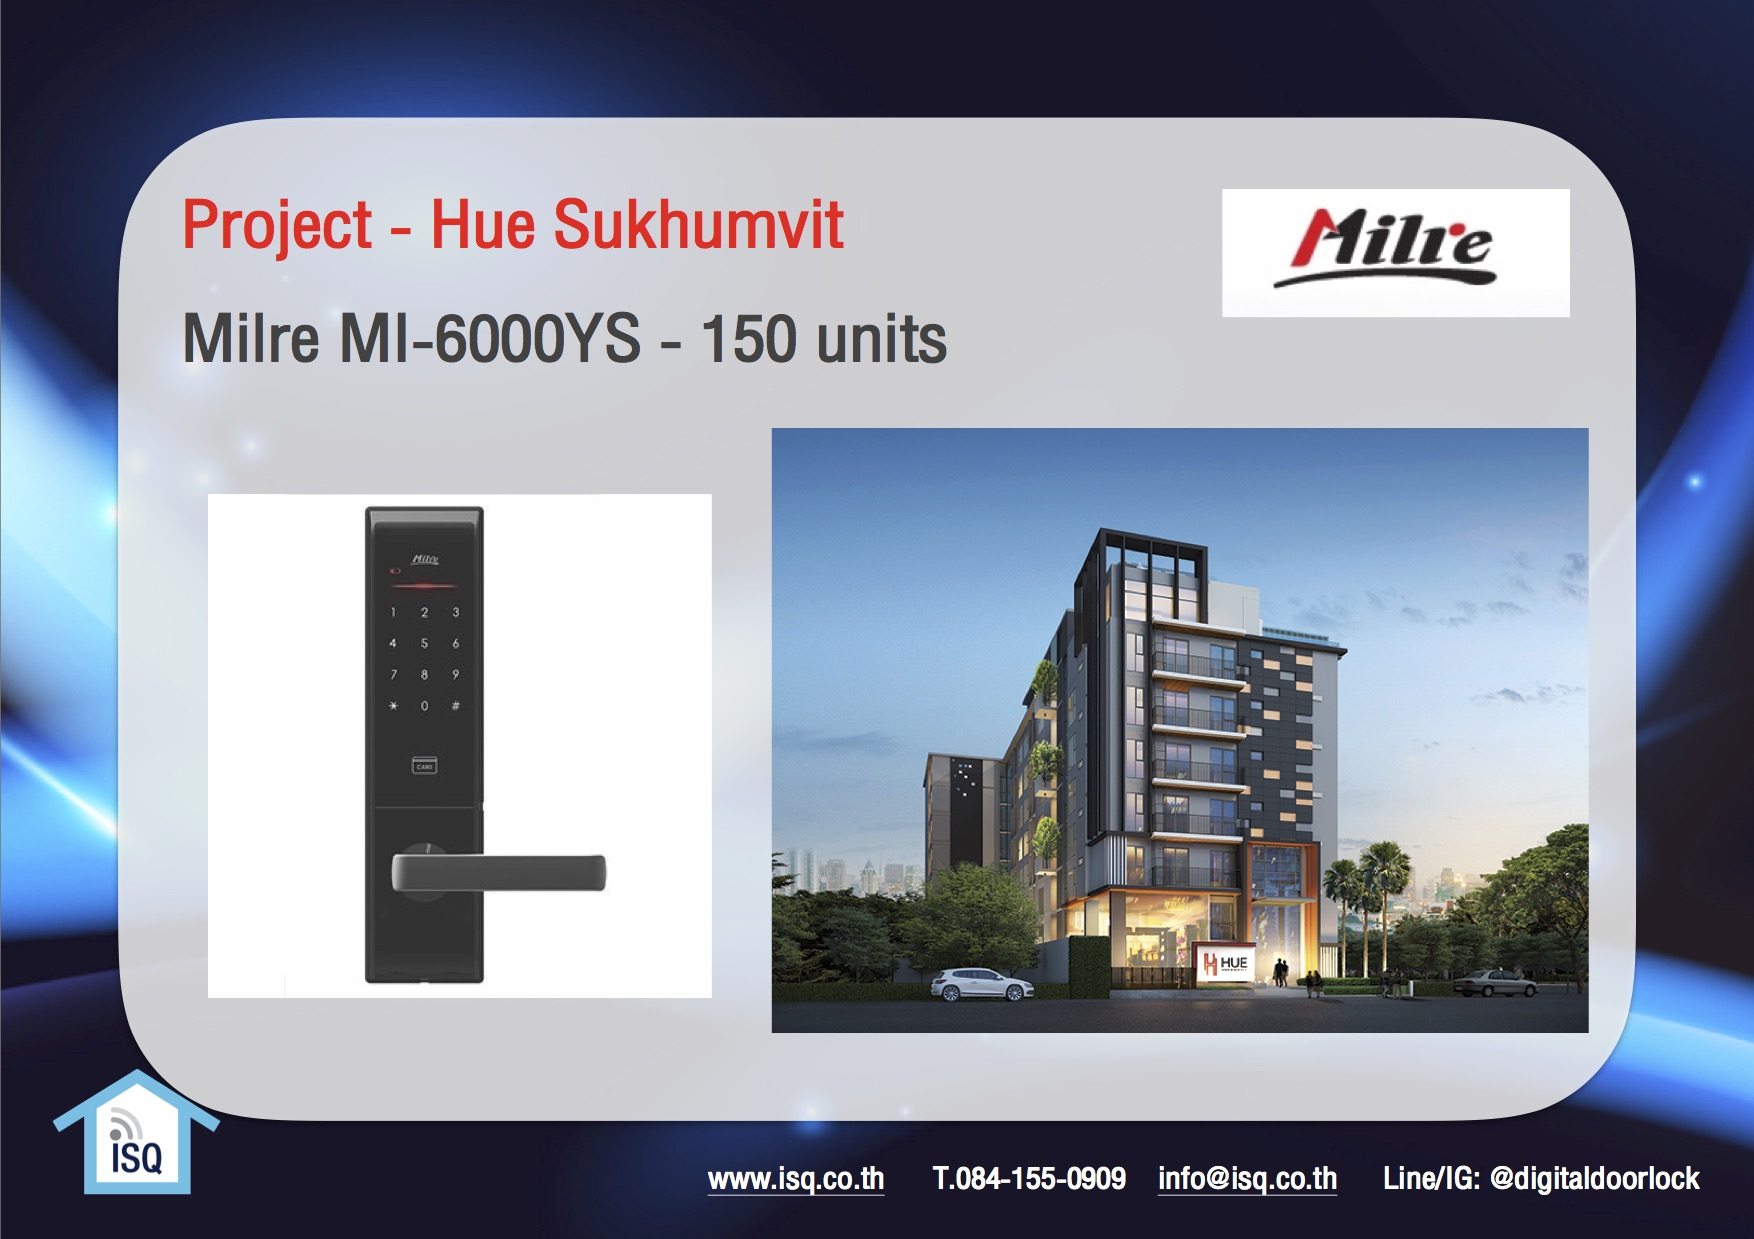 digital door lock กลอนประตูดิจิตอล Project Hue Sukhumvit Milre MI-6000YS 150 units